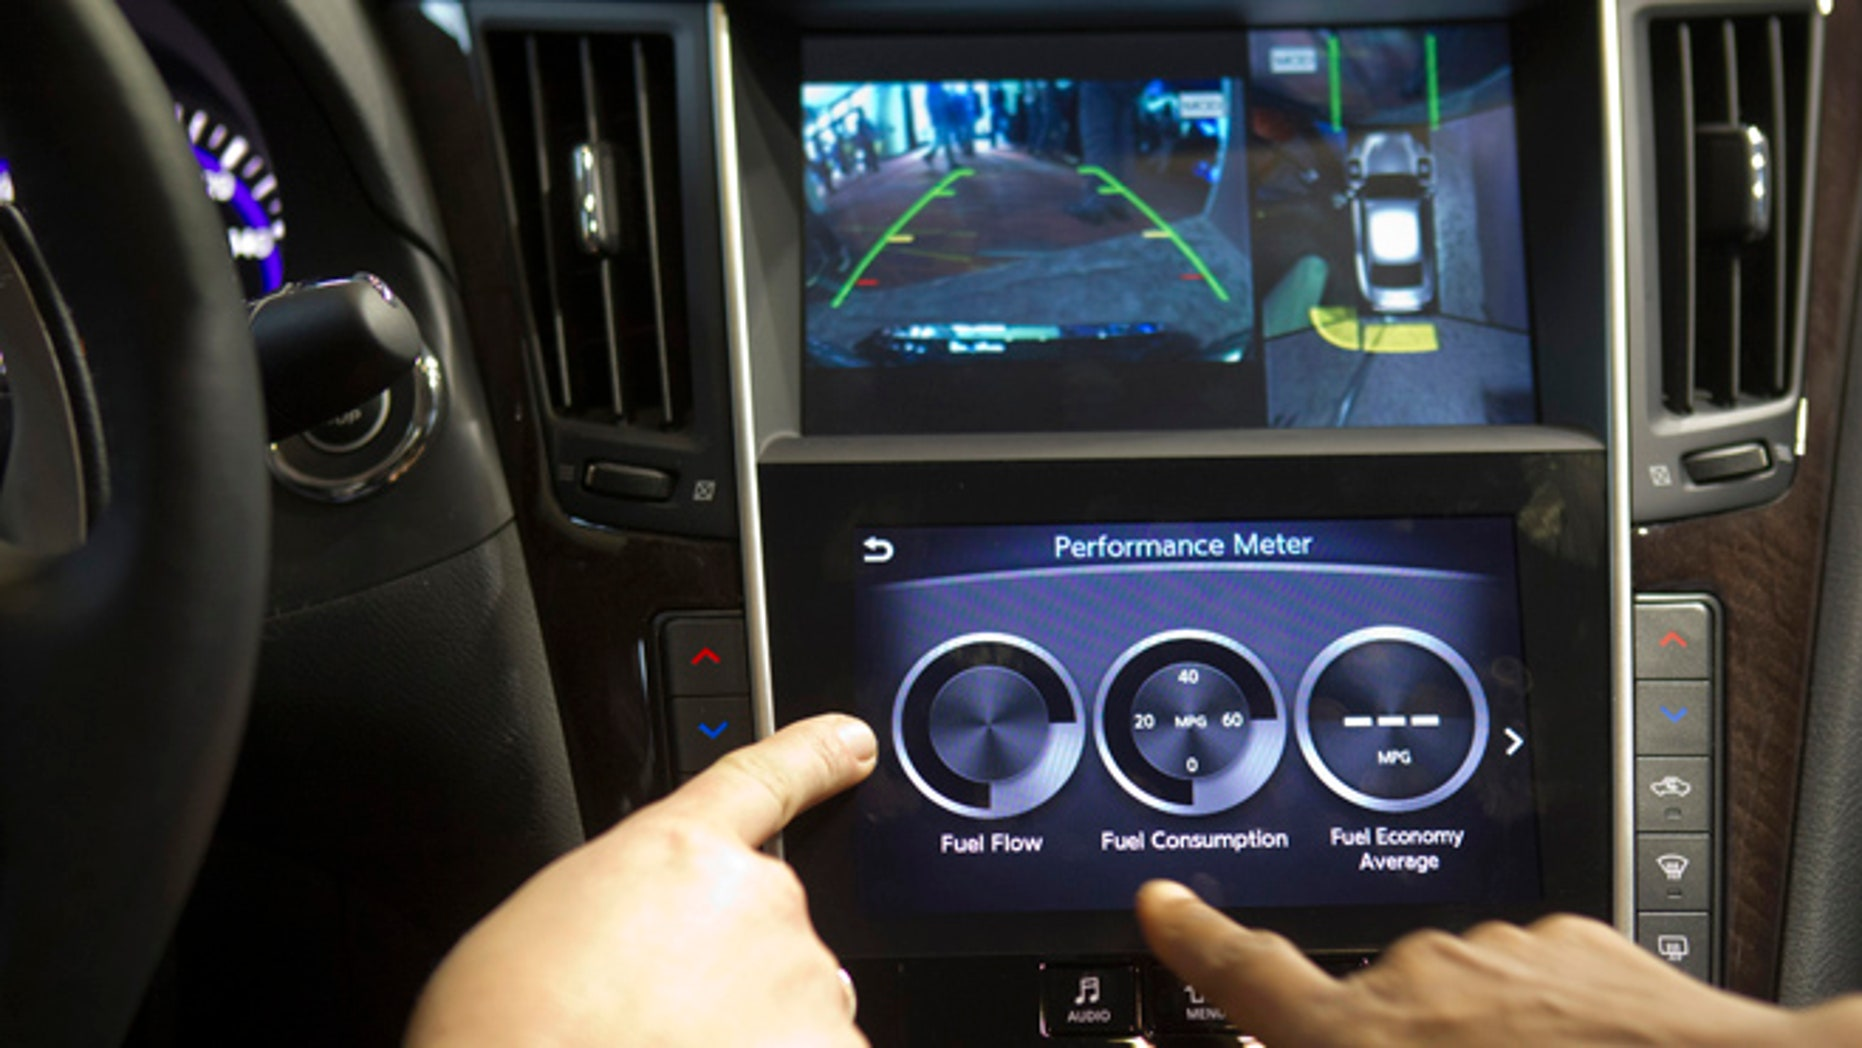 An Infiniti InTouch infotainment system is demonstrated inside an Infinity Q50S during the 2014 International Consumer Electronics Show (CES) in Las Vegas, Nevada.